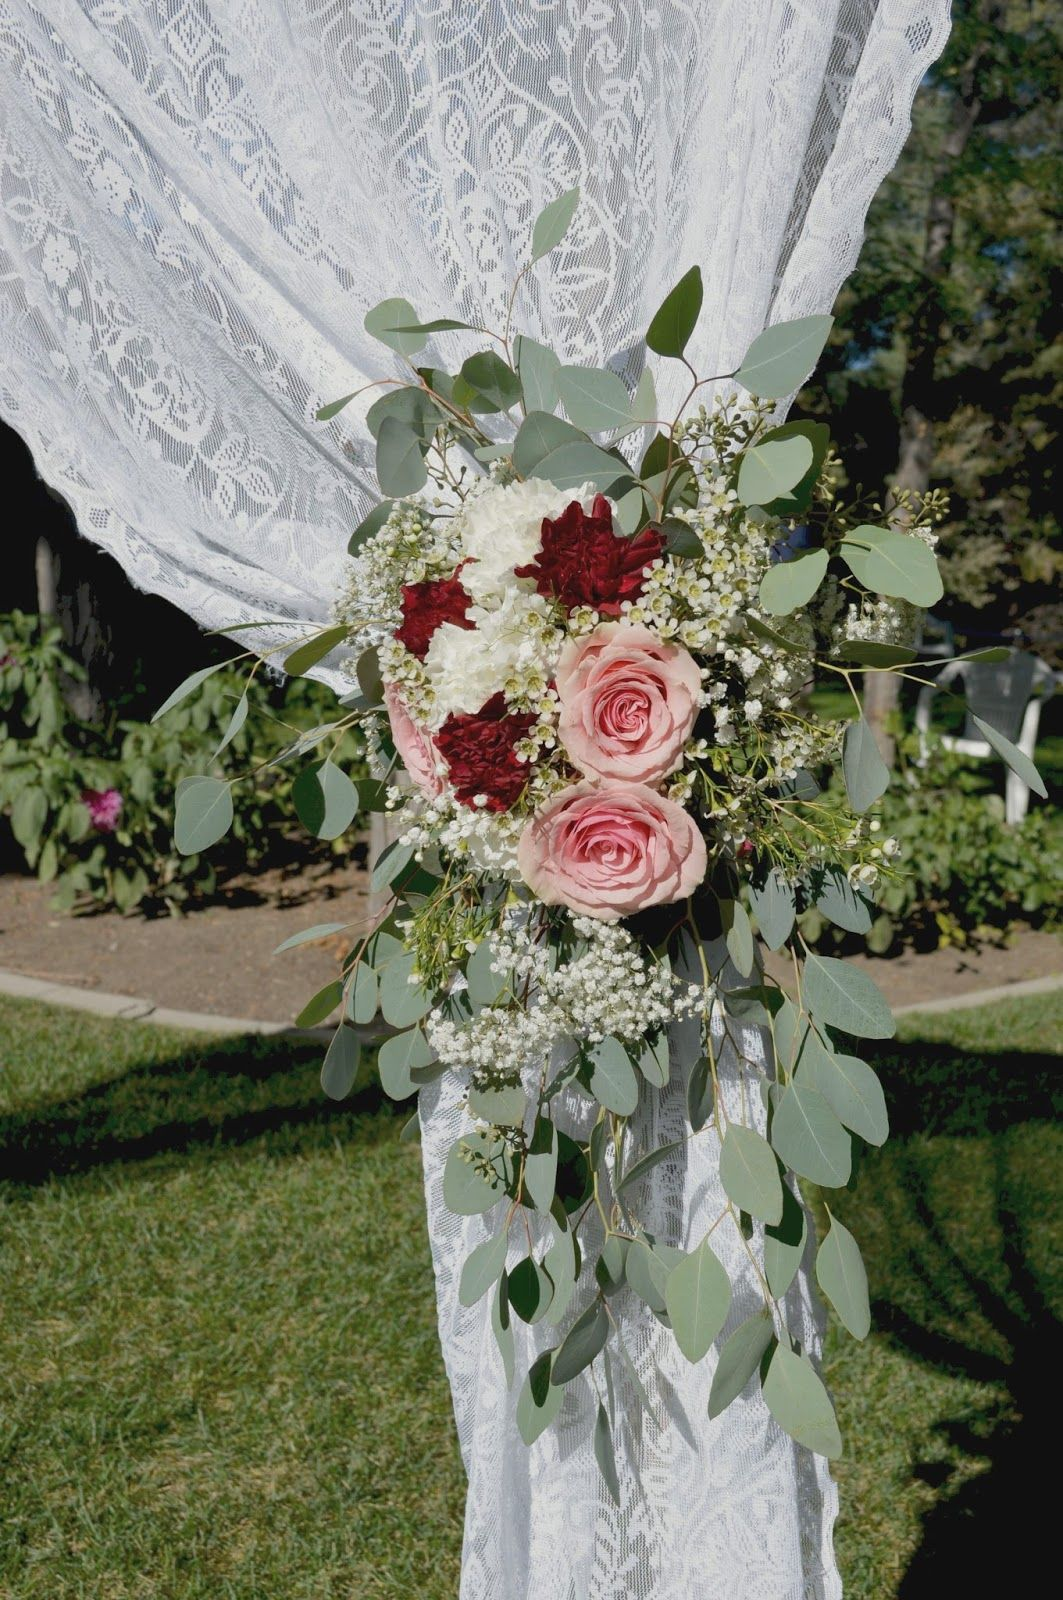 Ansteckblume Hochzeit Burgundy Carnation Baby 39s Breath And Eucalyptus